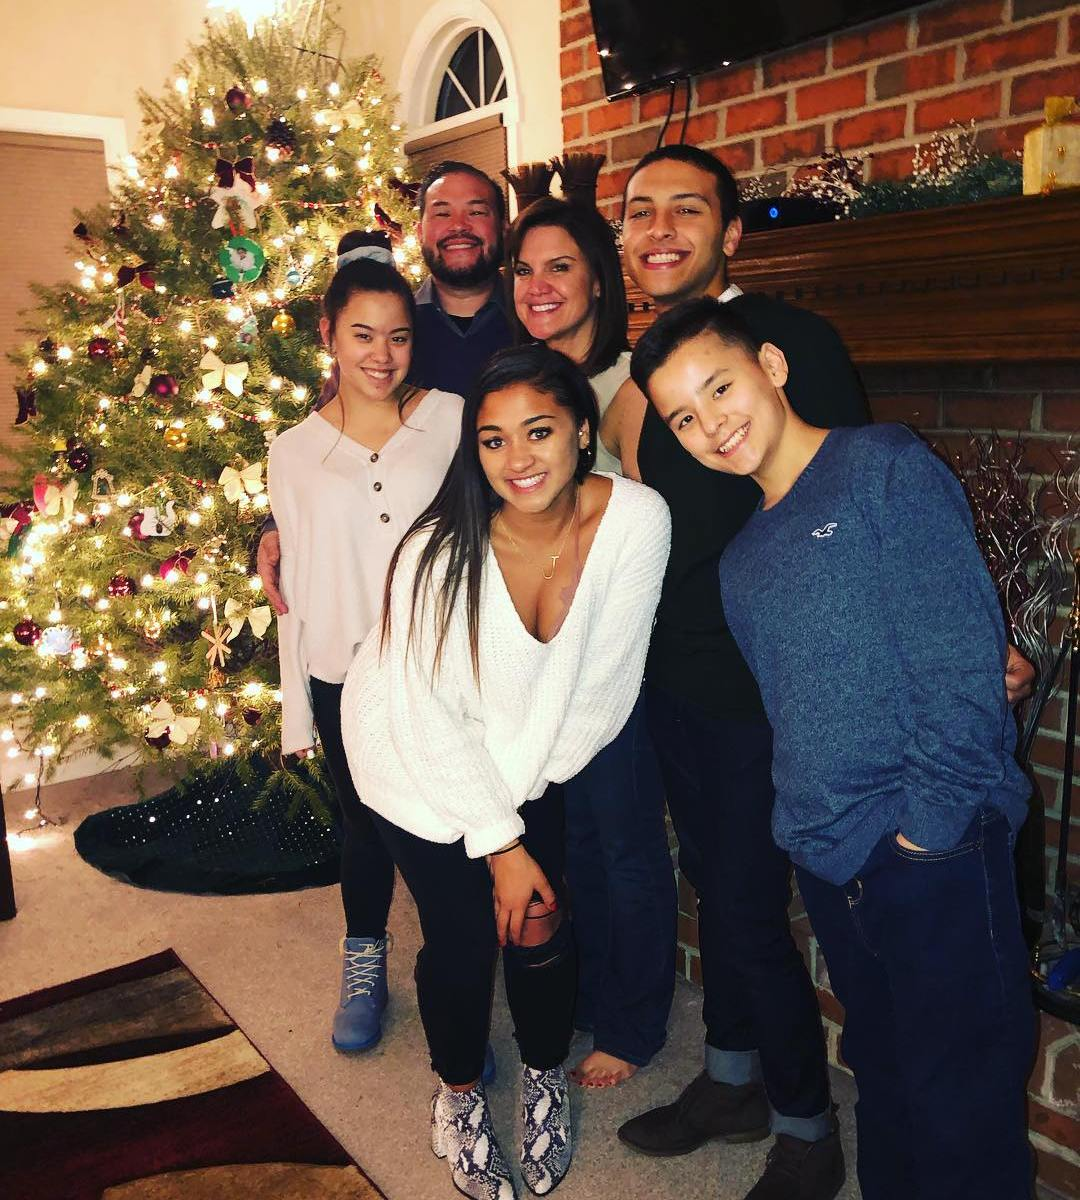 The Gosselins Christmas 2020 Jon and Kate Gosselin's Sextuplets: See Pics of Them as Kids and Teens